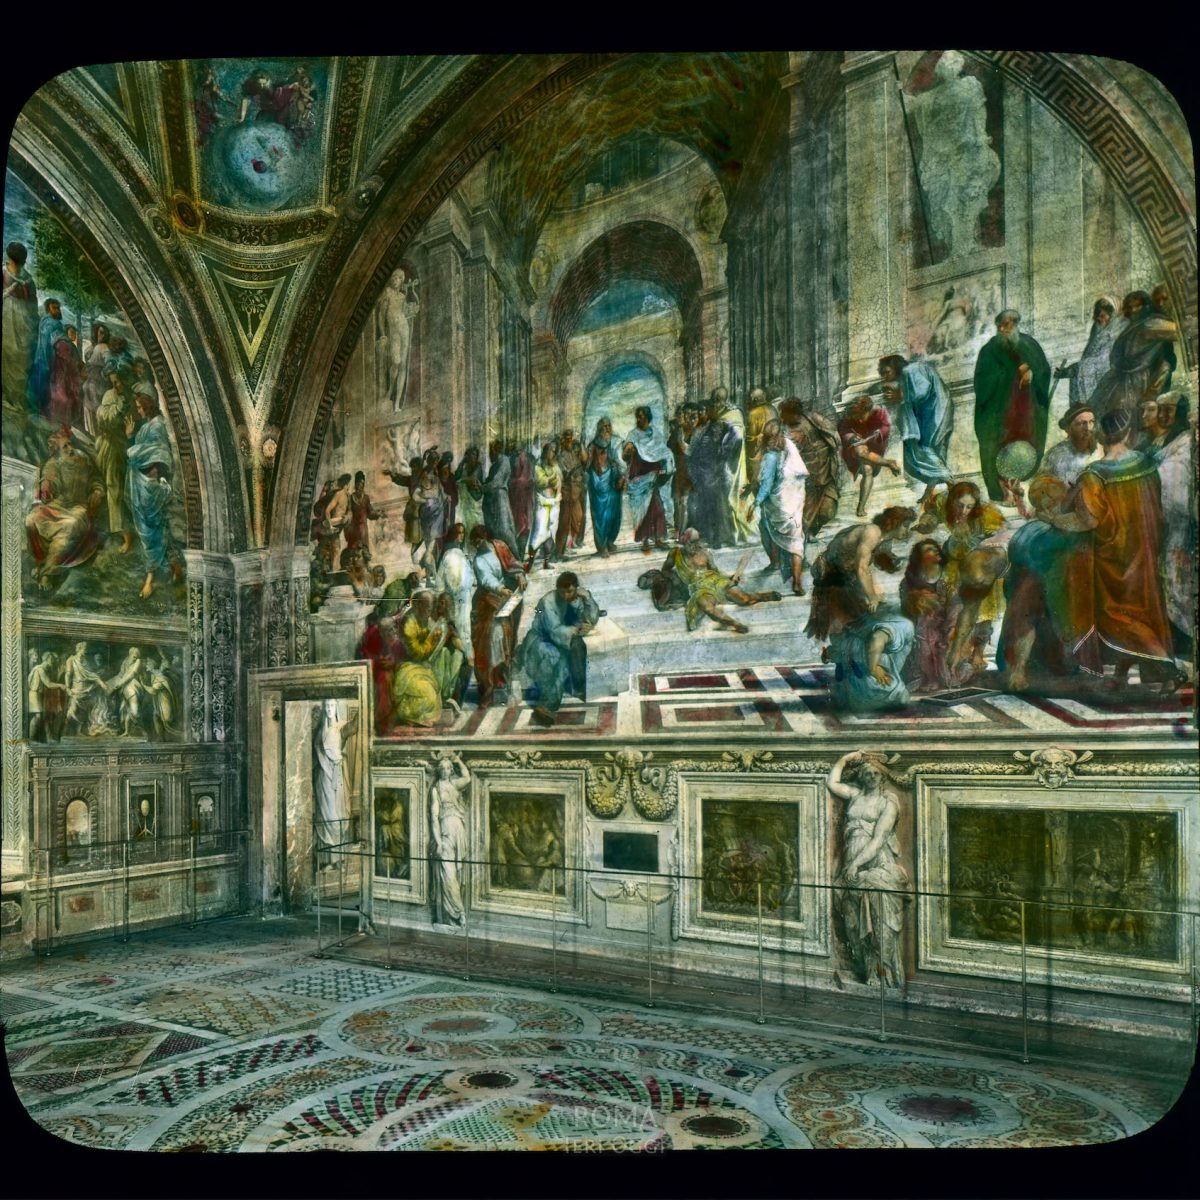 """Vatican City. Stanze della Segnatura: view of room and Raphael's """"School of Athens"""" View in tinted lantern slide, ca. 1919-1938. The painting dates from ca. 1508-1511."""